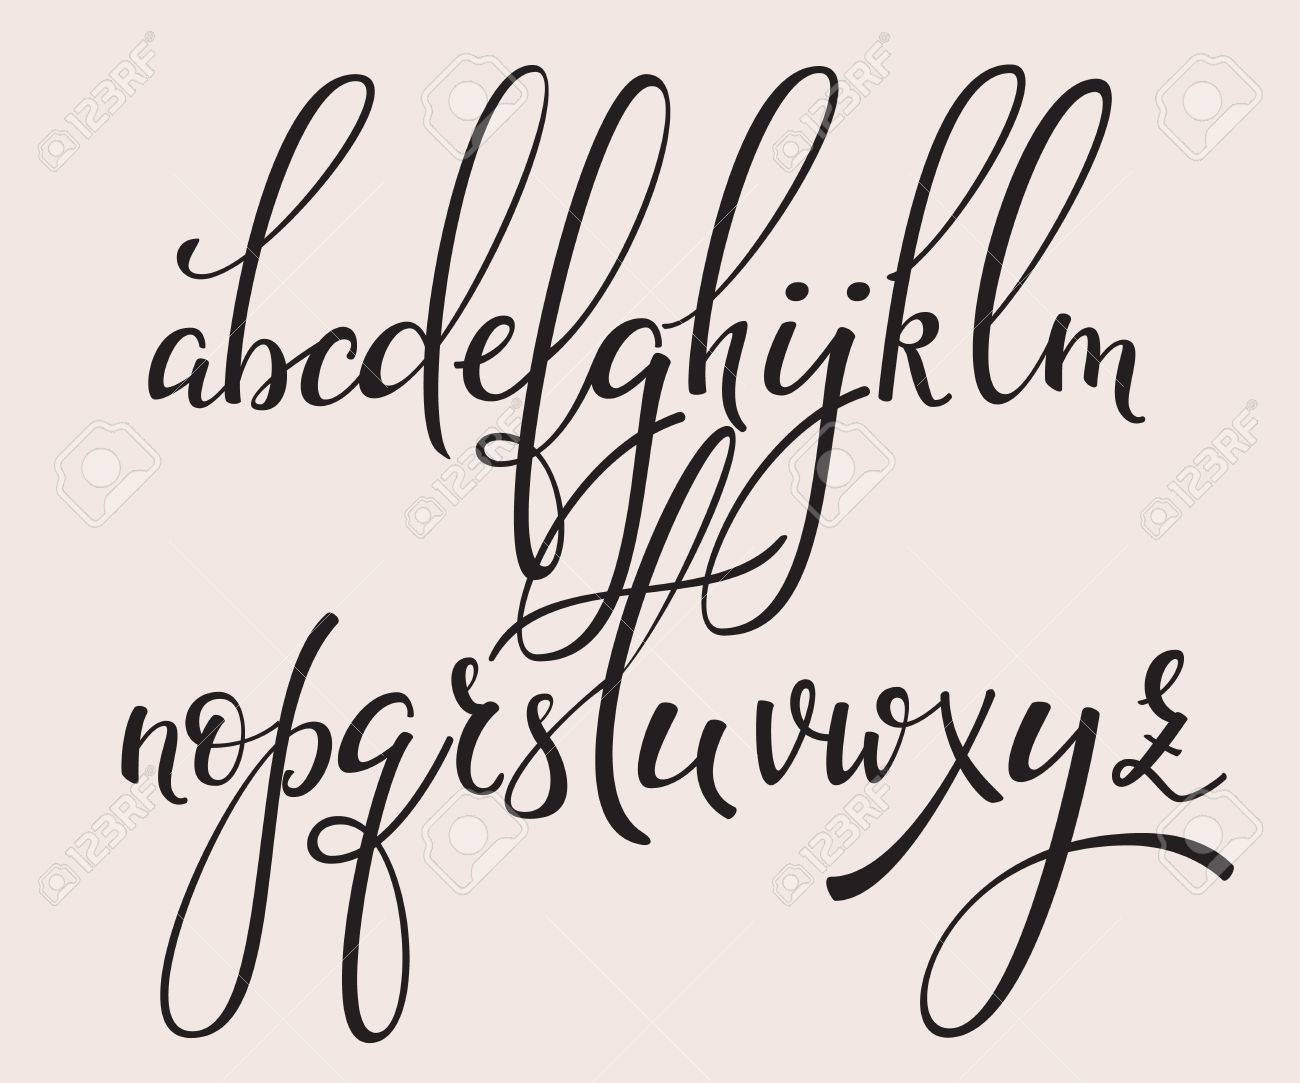 Handwritten Brush Style Modern Calligraphy Cursive Font With..